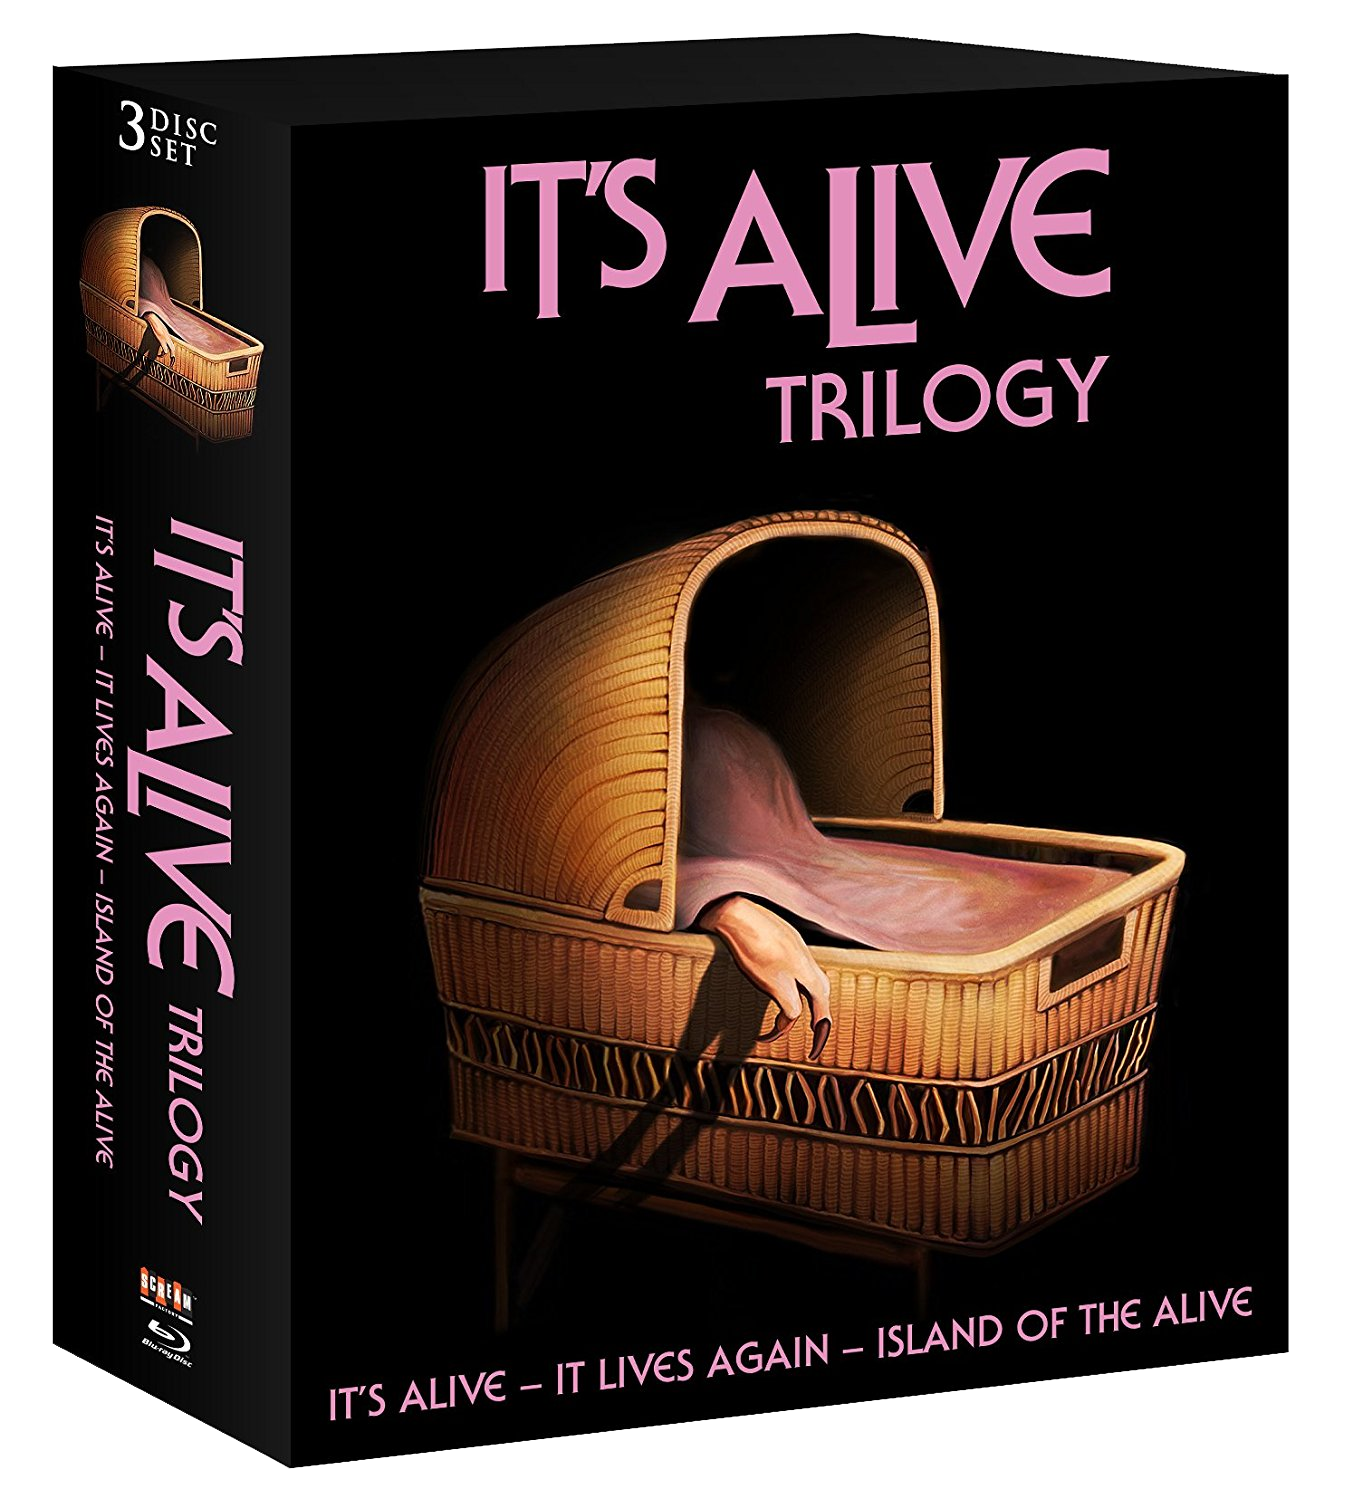 THE B-MOVIE NEWS VAULT: Larry Cohen's IT'S ALIVE TRILOGY